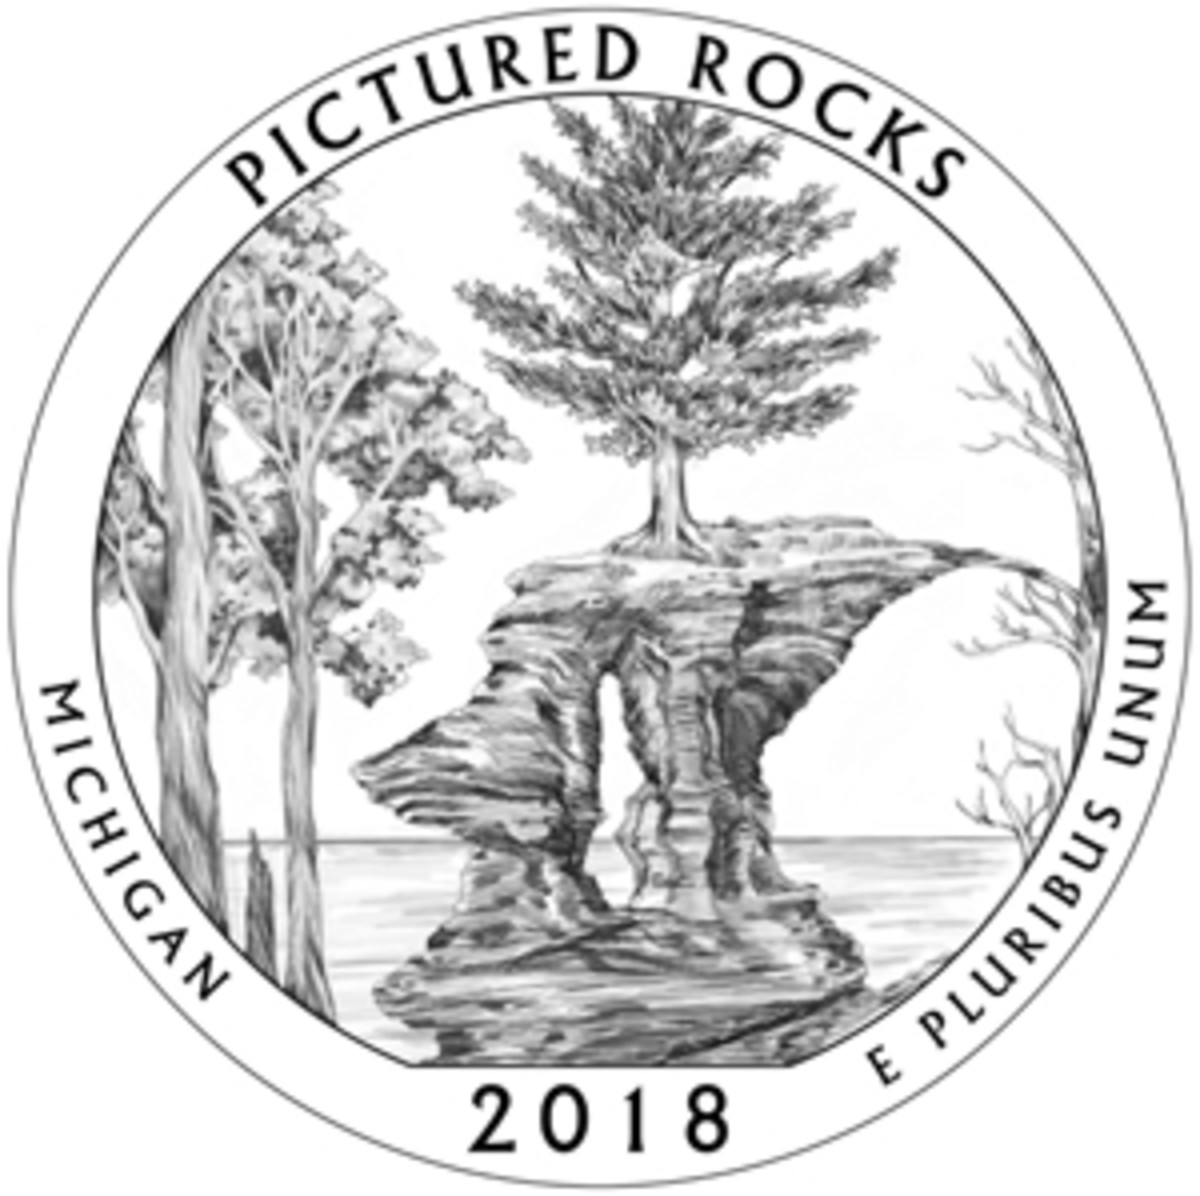 Approved reverse design for the upcoming 2018 America the Beautiful quarter honoring Pictured Rocks National Lakeshore in Michigan.